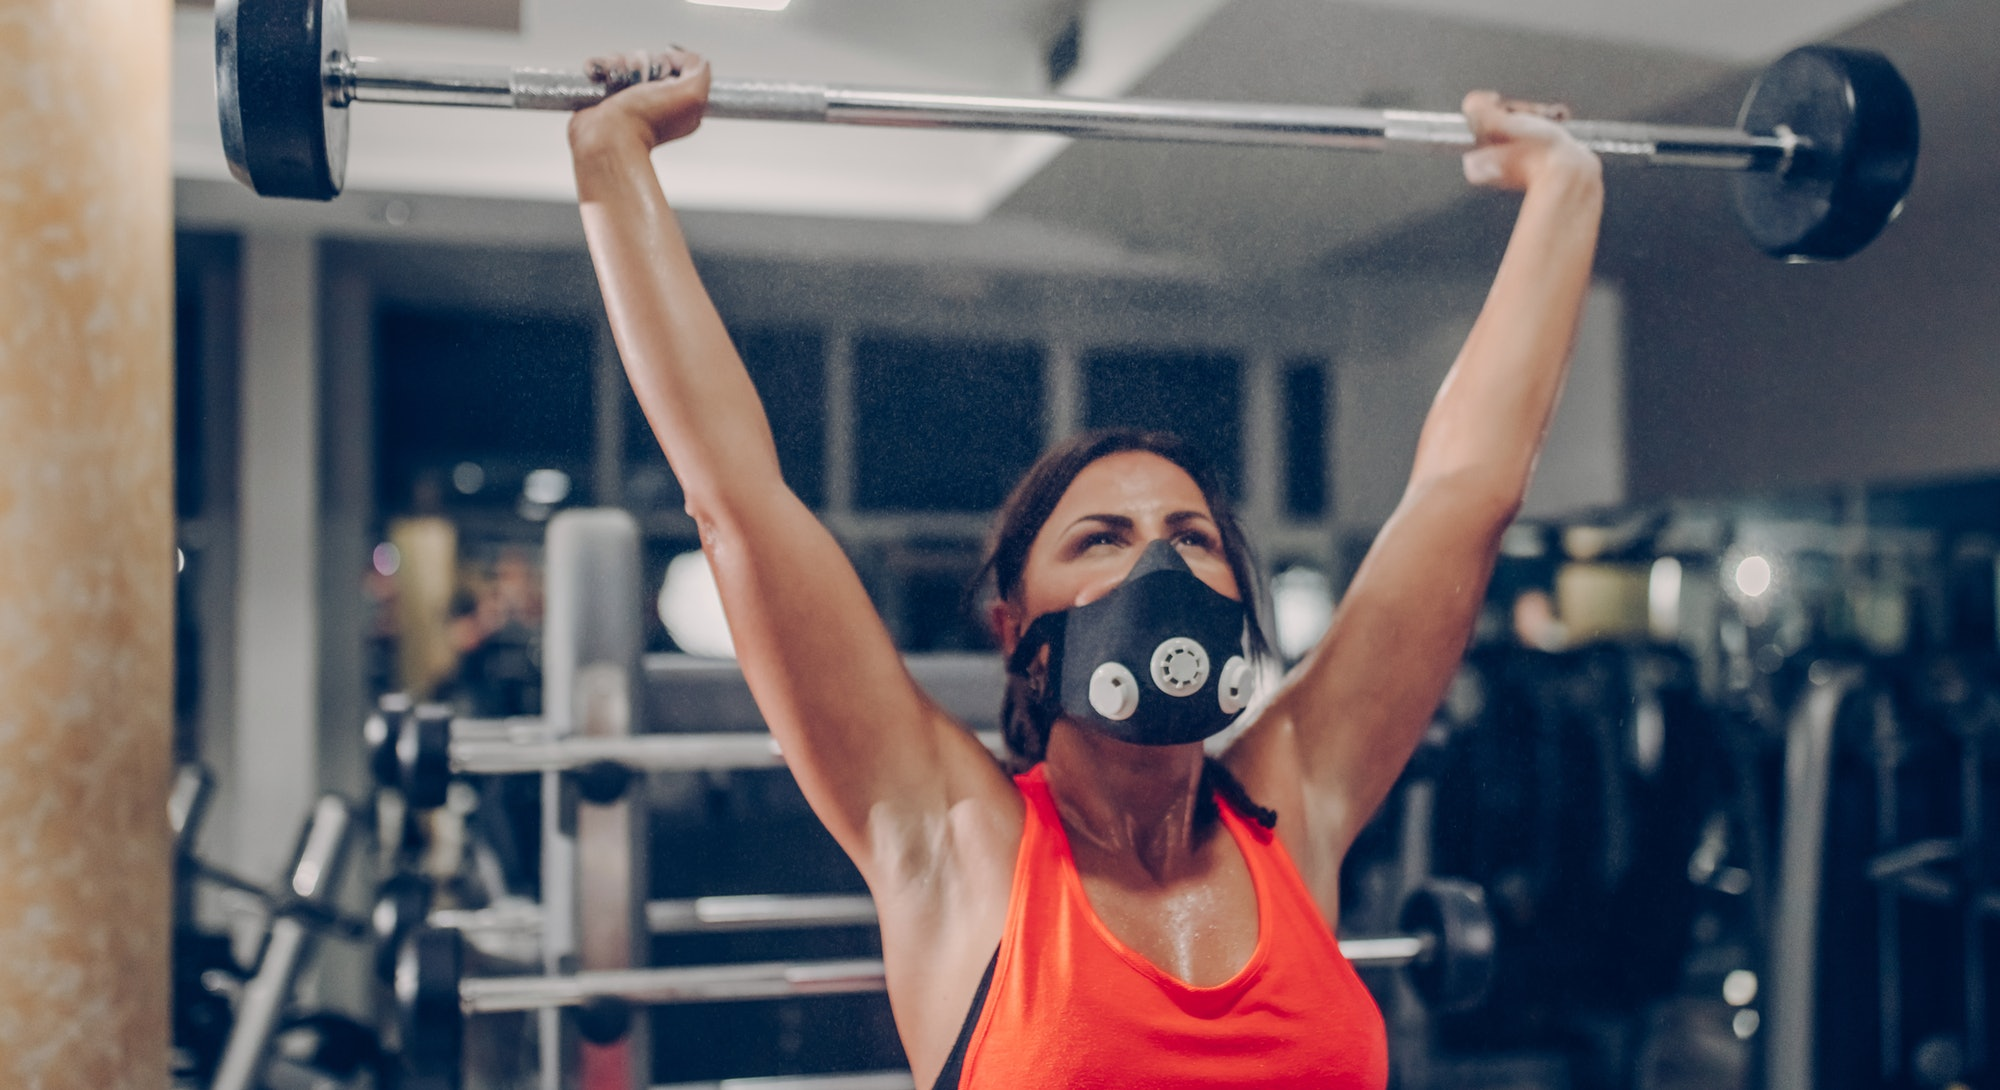 A person wearing an orange tank top and a black mask presses a barbell overhead. Resistance training has a wealth of health benefits.